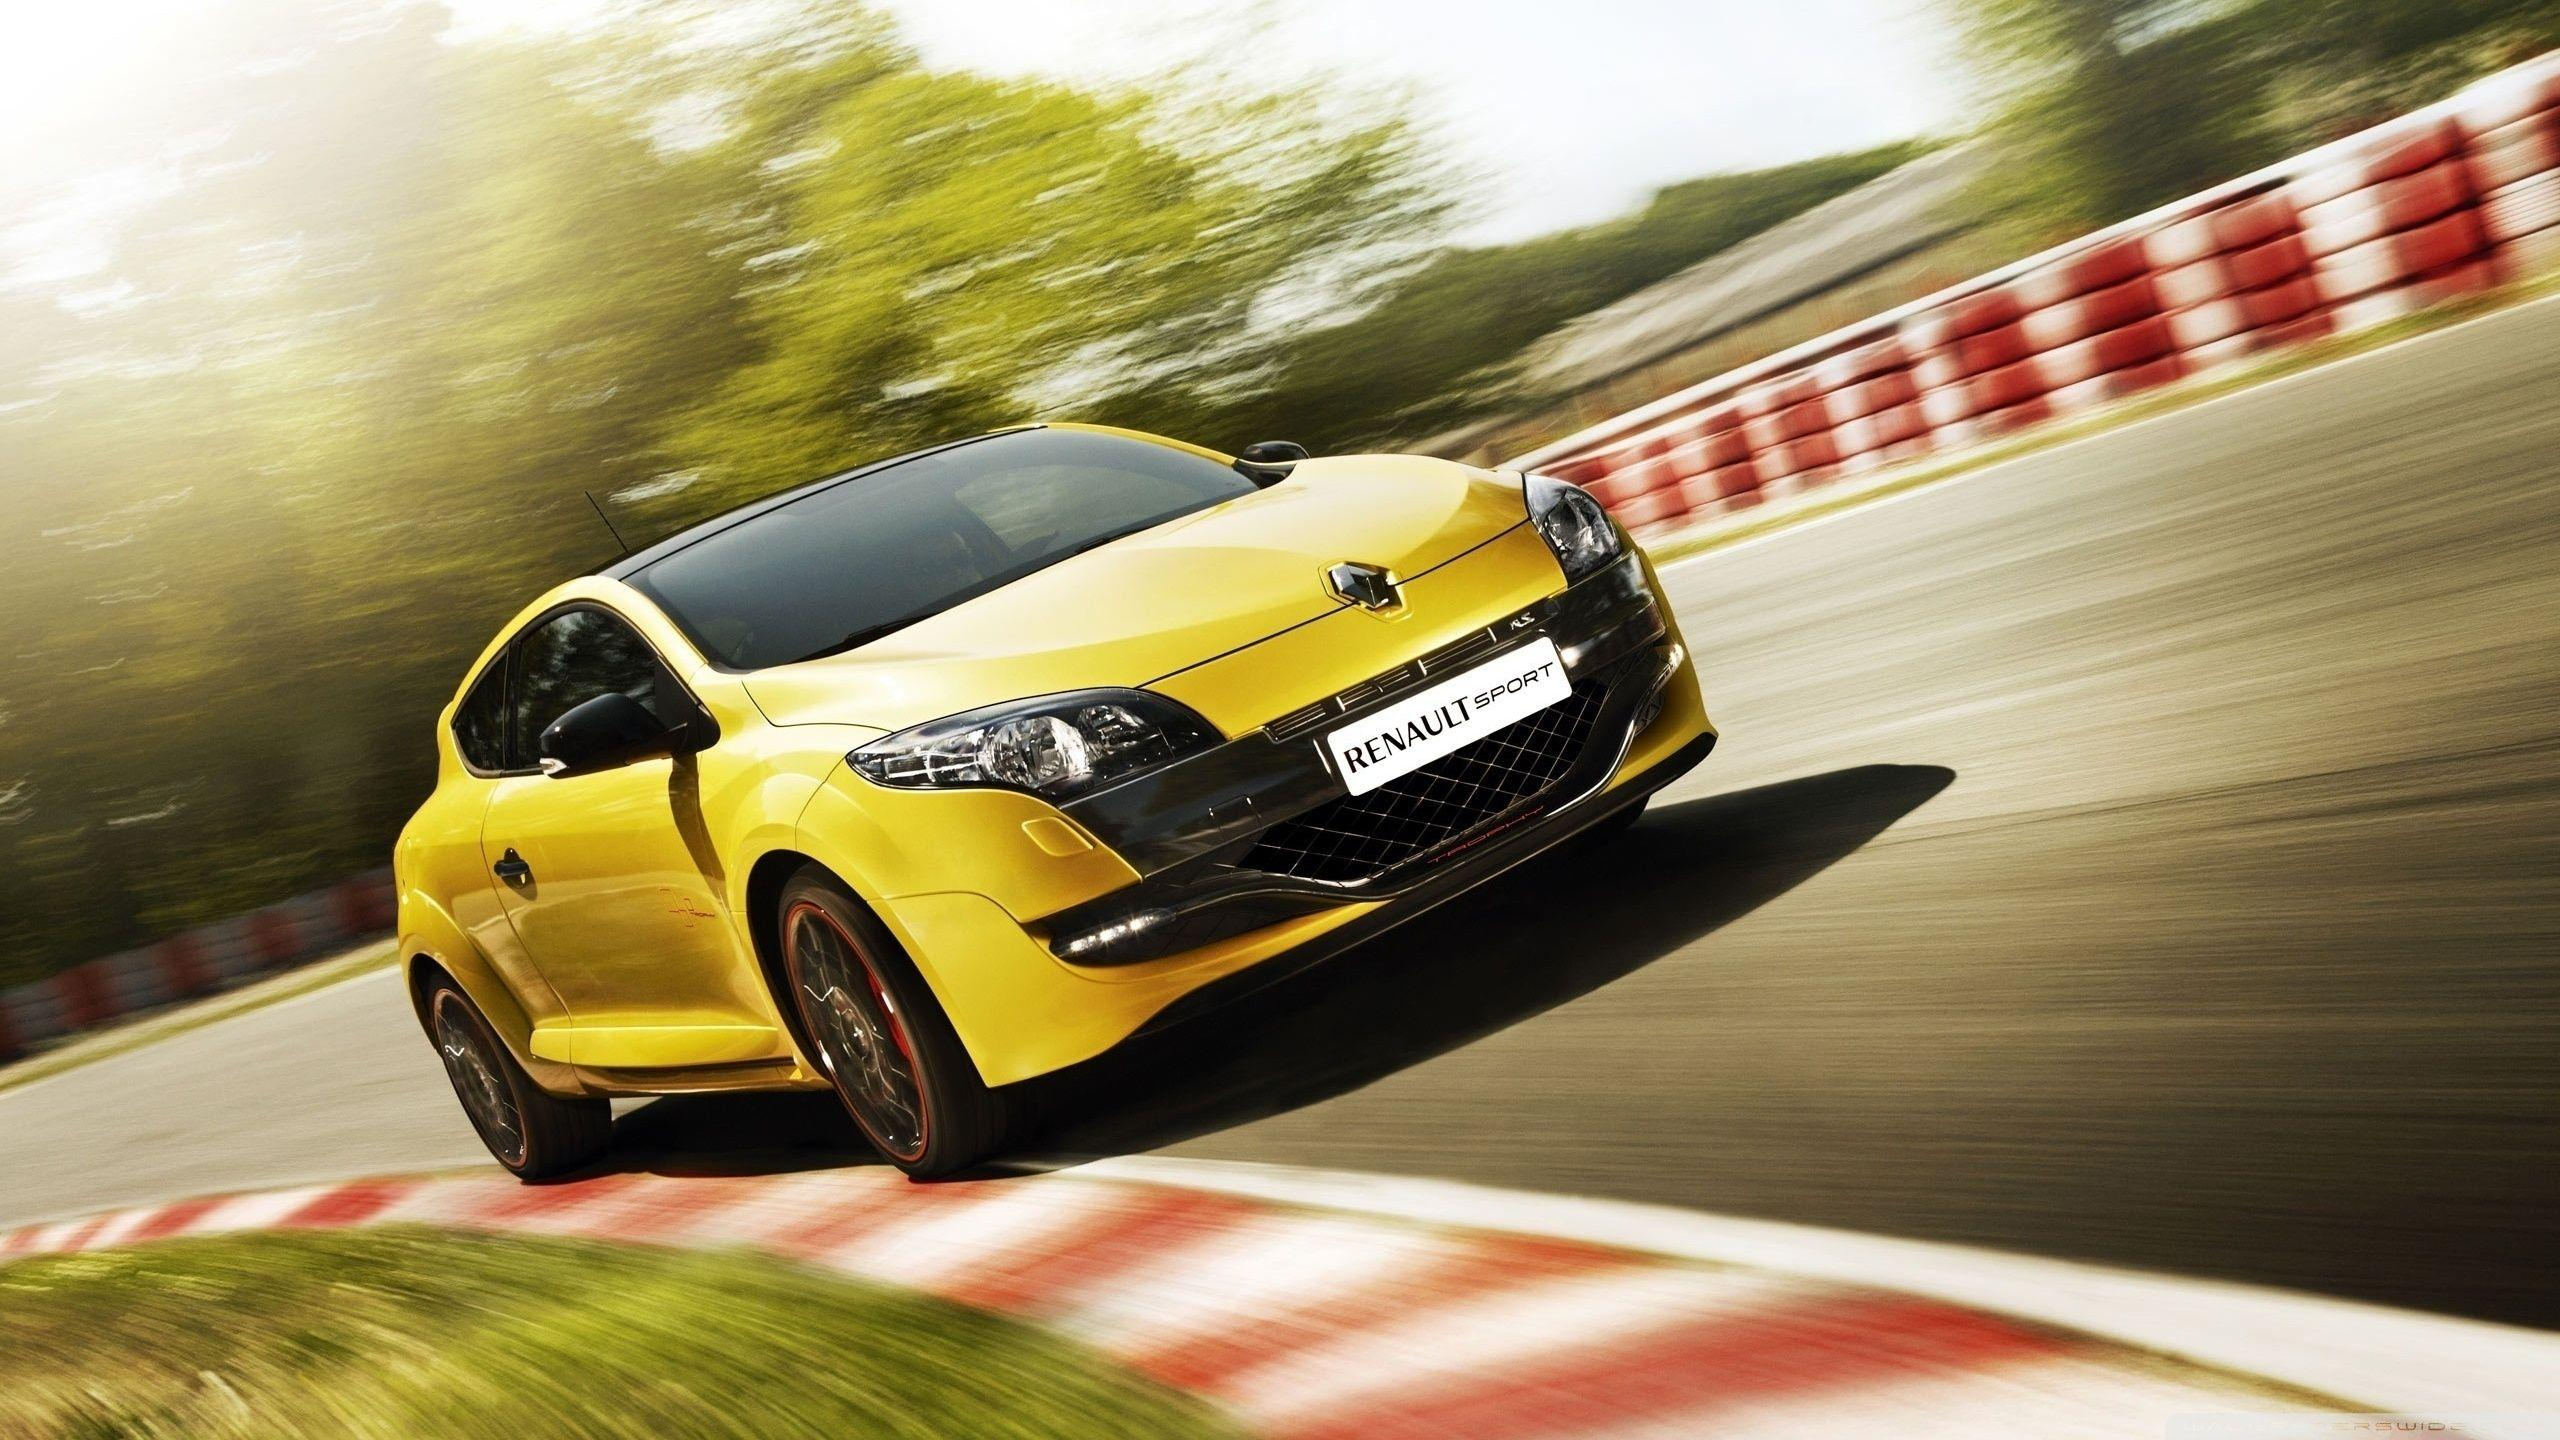 Renault Megane RS Yellow ❤ 4K HD Desktop Wallpapers for 4K Ultra HD